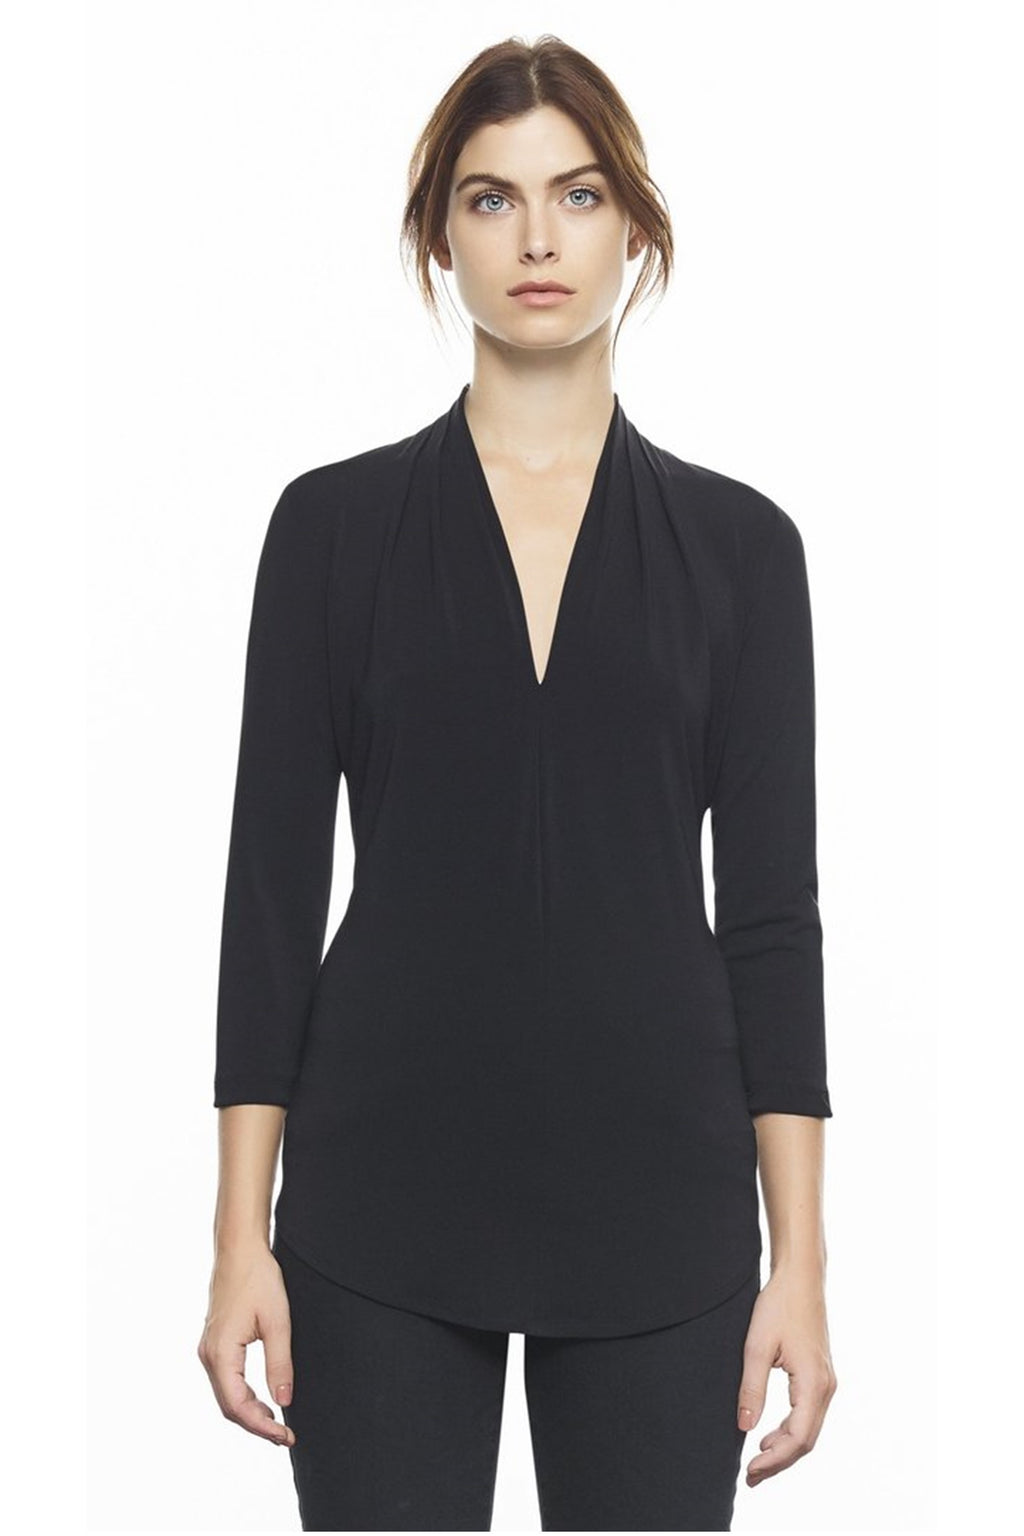 I by Iris Setlakwe Matte Jersey High Neck Pleated V Neck Top in Black